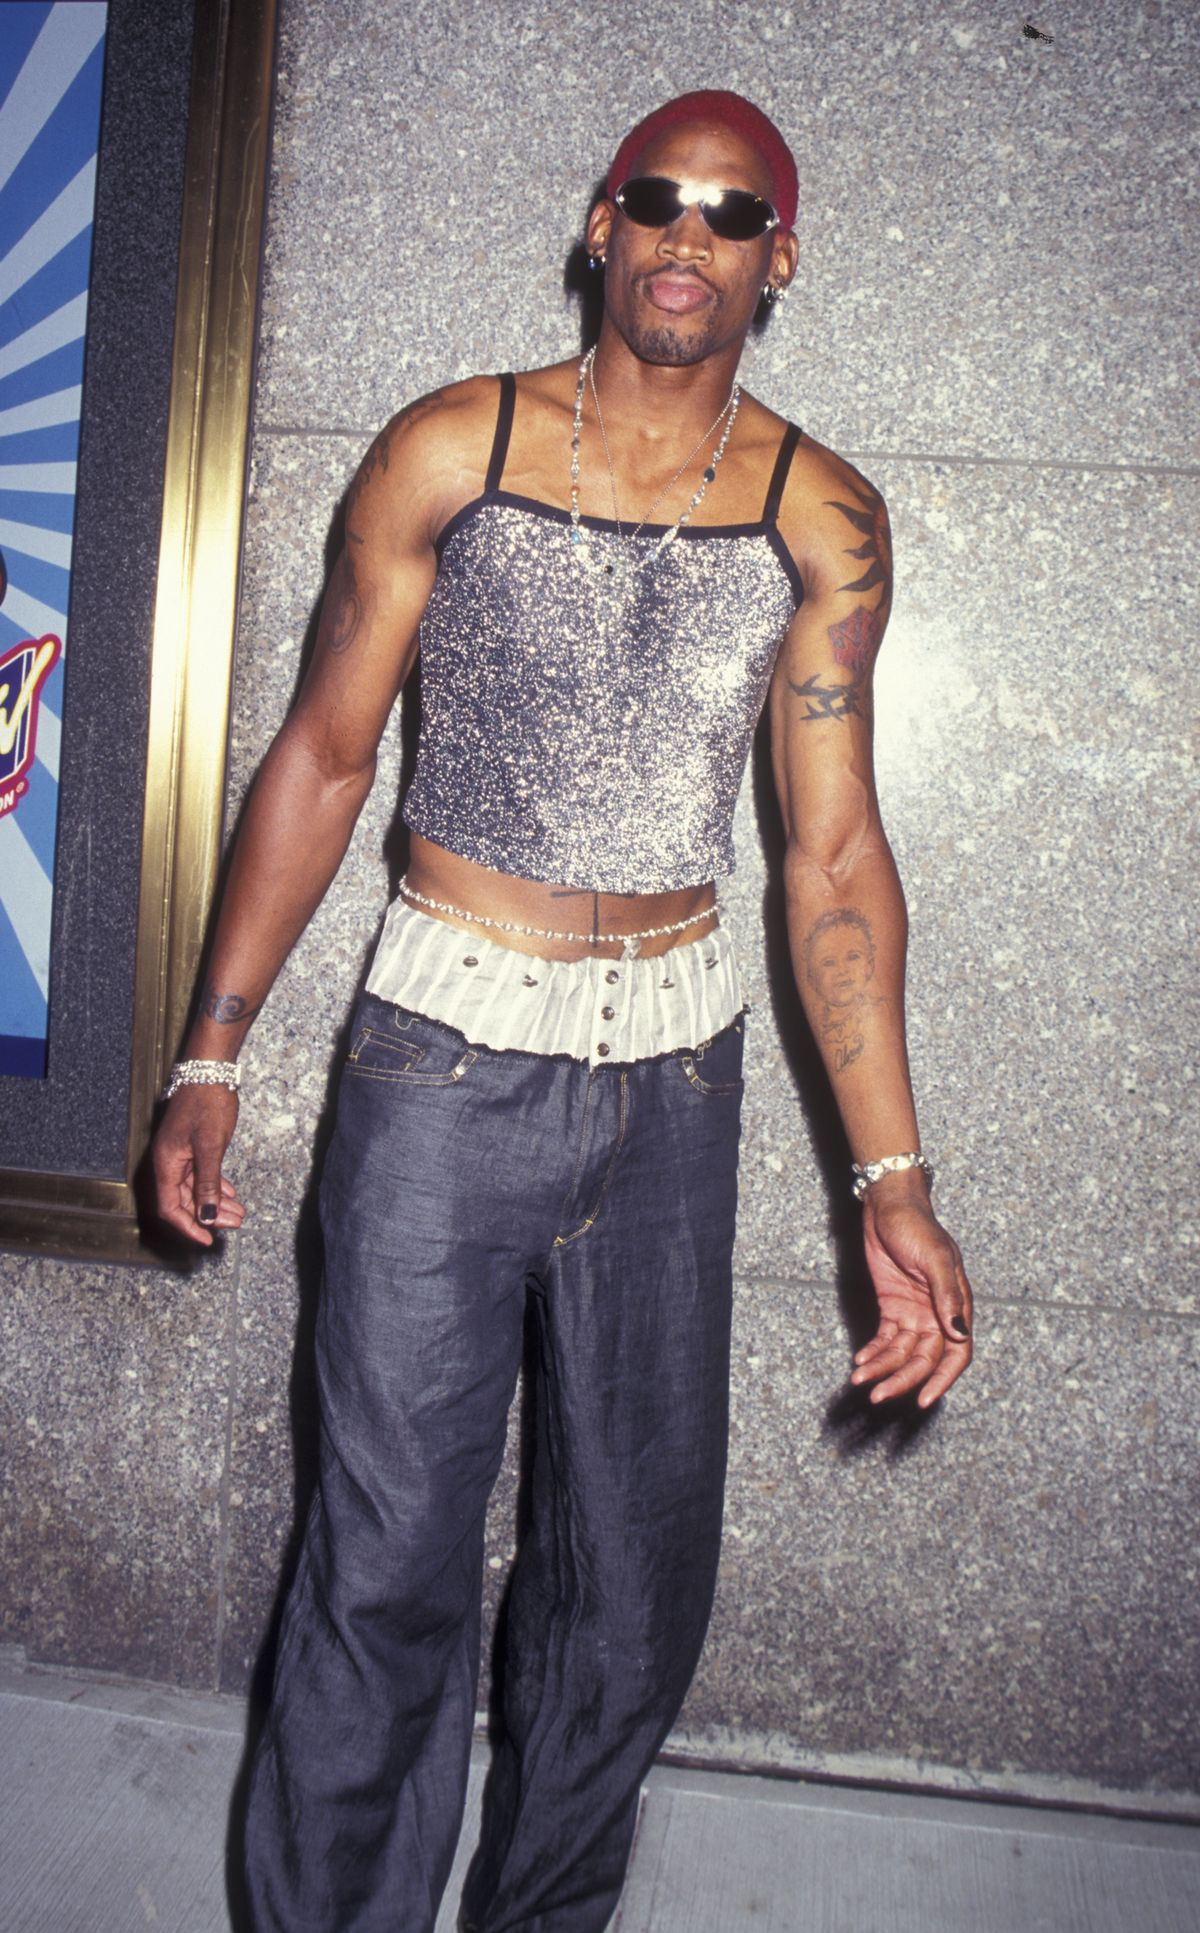 NEW YORK CITY - SEPTEMBER 7: Dennis Rodman attends 12th Annual MTV Video Music Awards on September 7, 1995 at Radio City Music Hall in New York City. (Photo by Ron Galella, Ltd./WireImage)